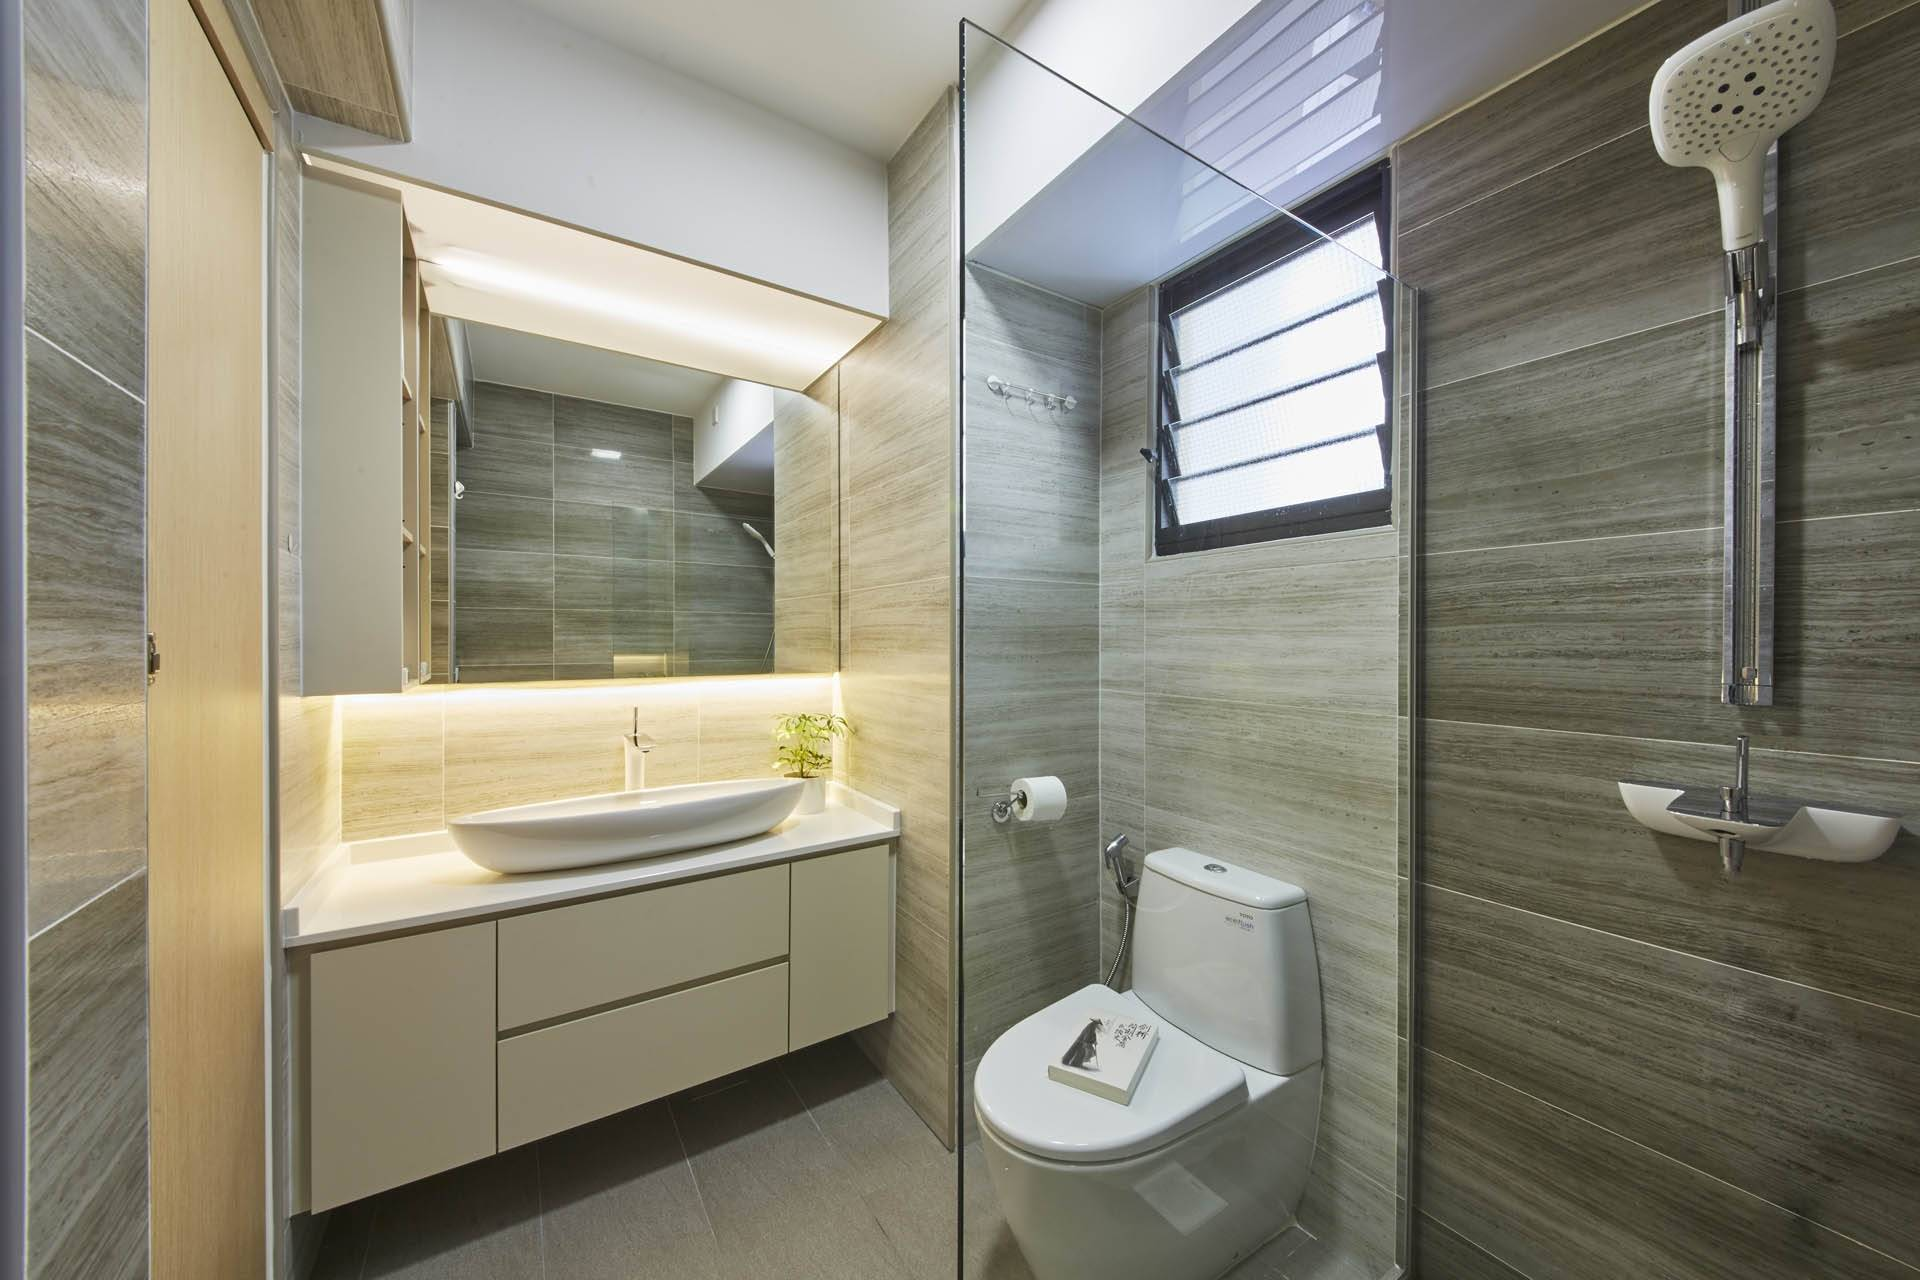 Hdb bathroom design for Toilet design